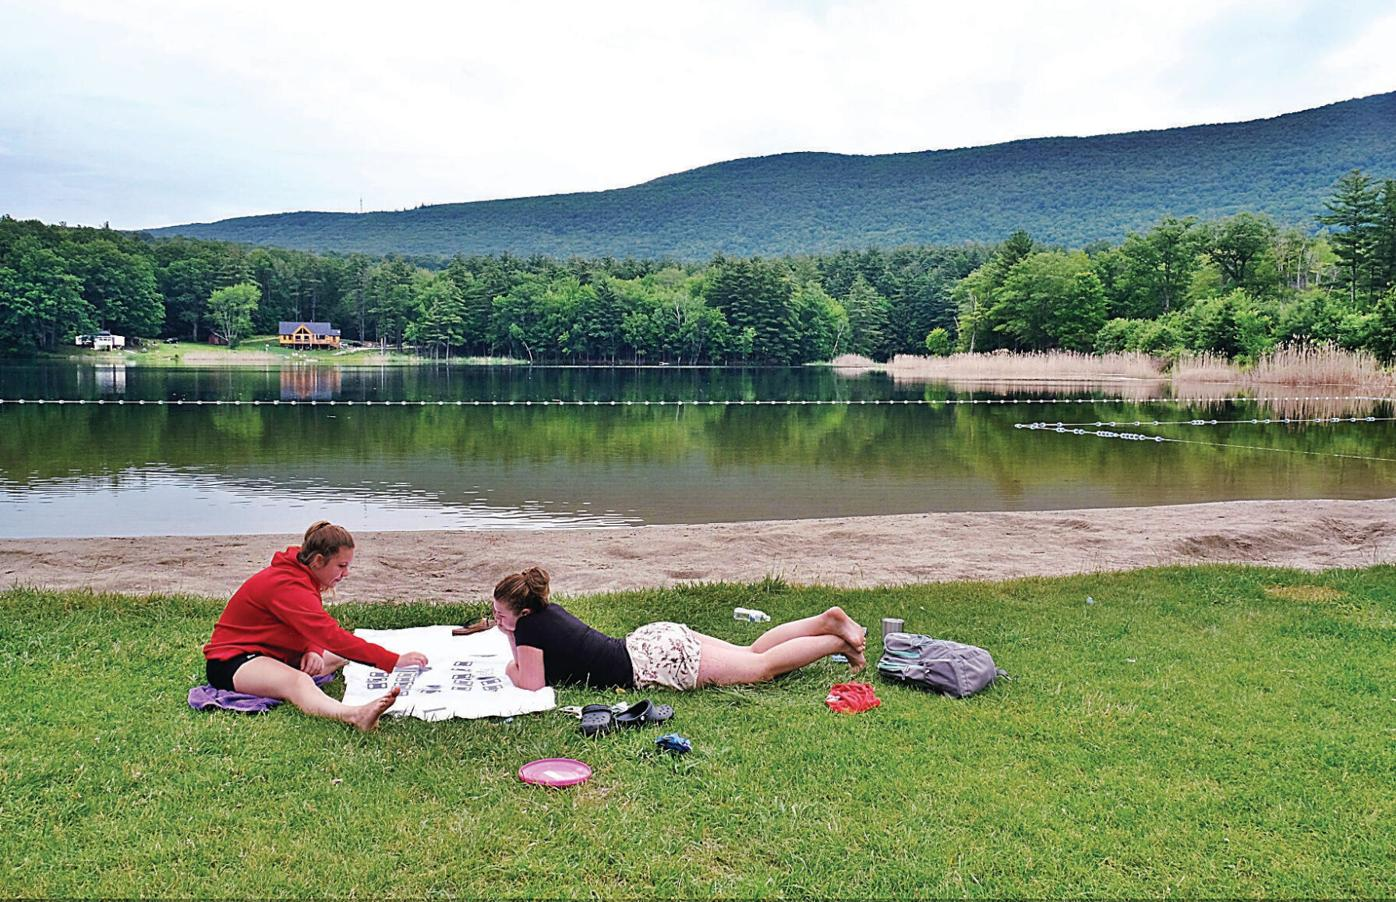 Survey of water bacteria levels finds safe swimming across Berkshires